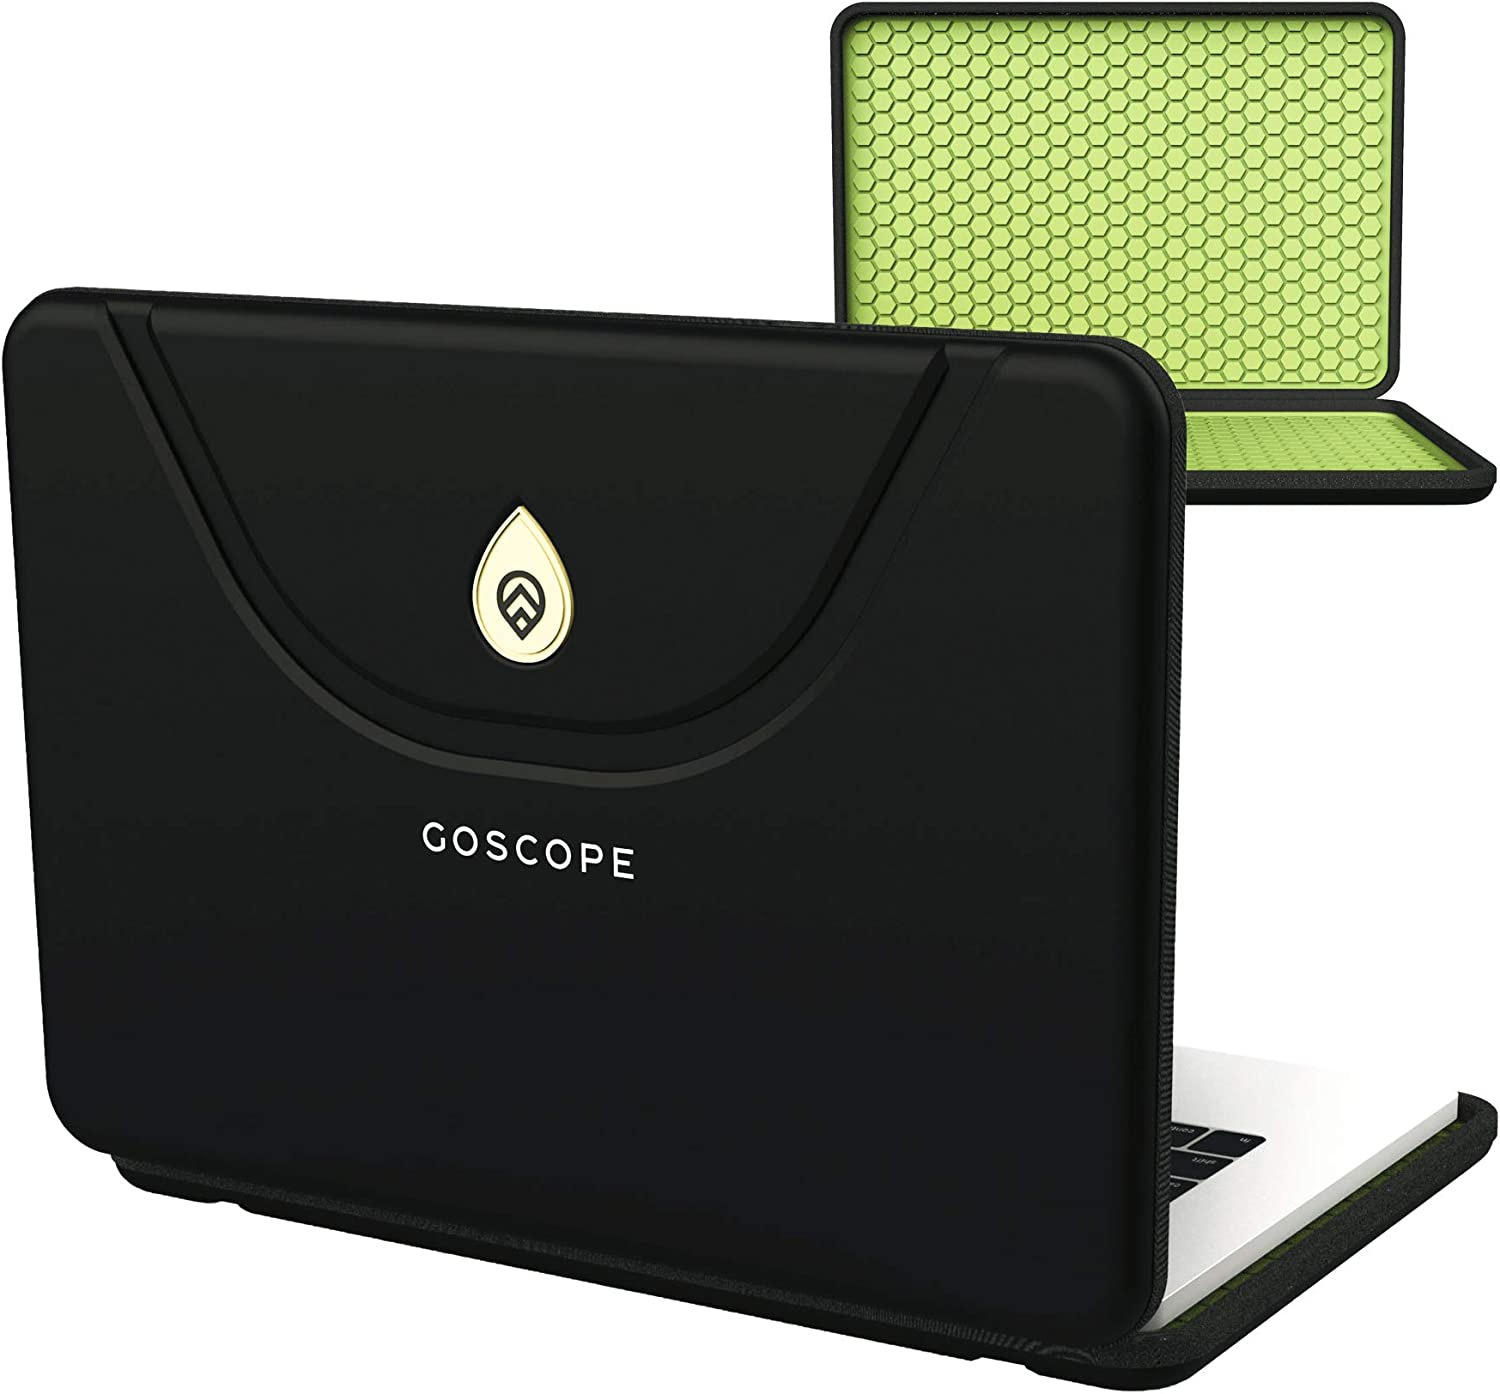 GoScope Applekeeper 16 - Rigid Exterior Notebook Sleeve Compatible with MacBook Pro 16-inch   Apple (Late 2019/Early 2020) Compatible with MacBook Pro 16